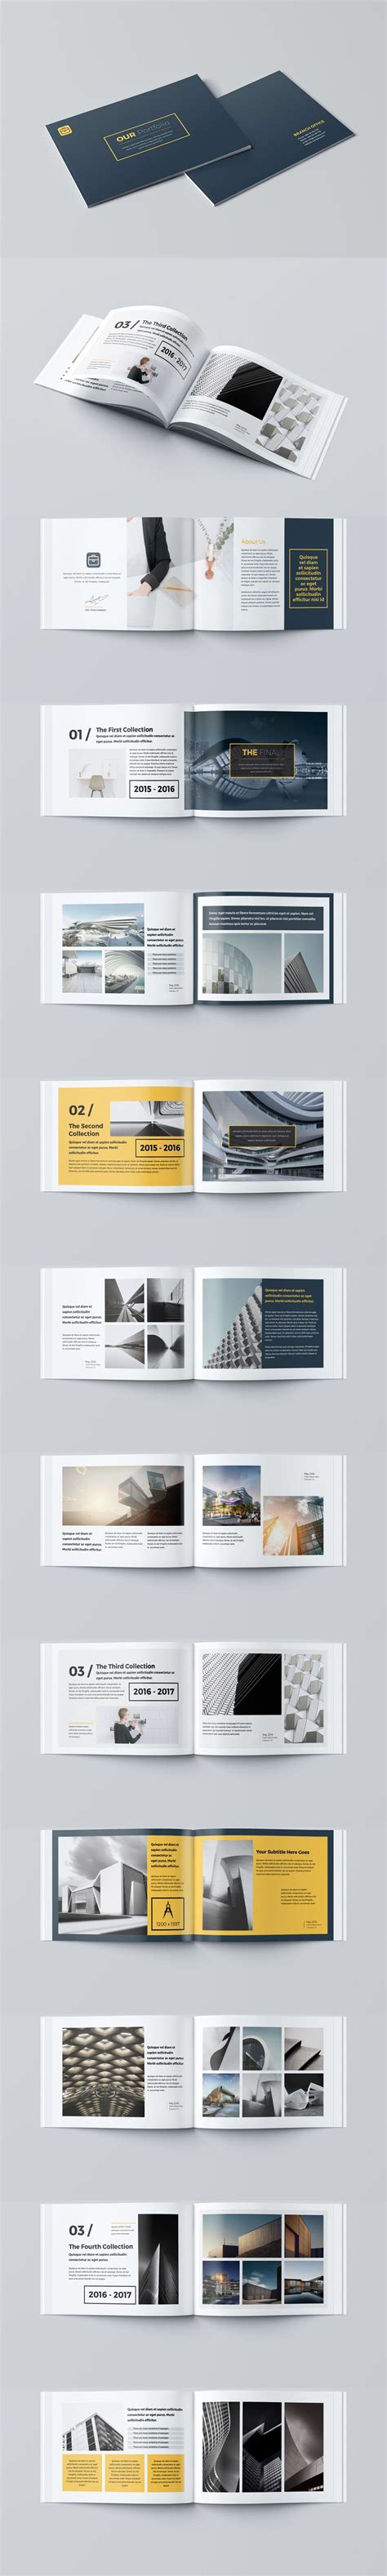 Our Portfolio Architecture 24 Pages A4 A5 Template Indesign Indd Brochure Templates Pinterest Architecture Portfolio Template Indesign Free